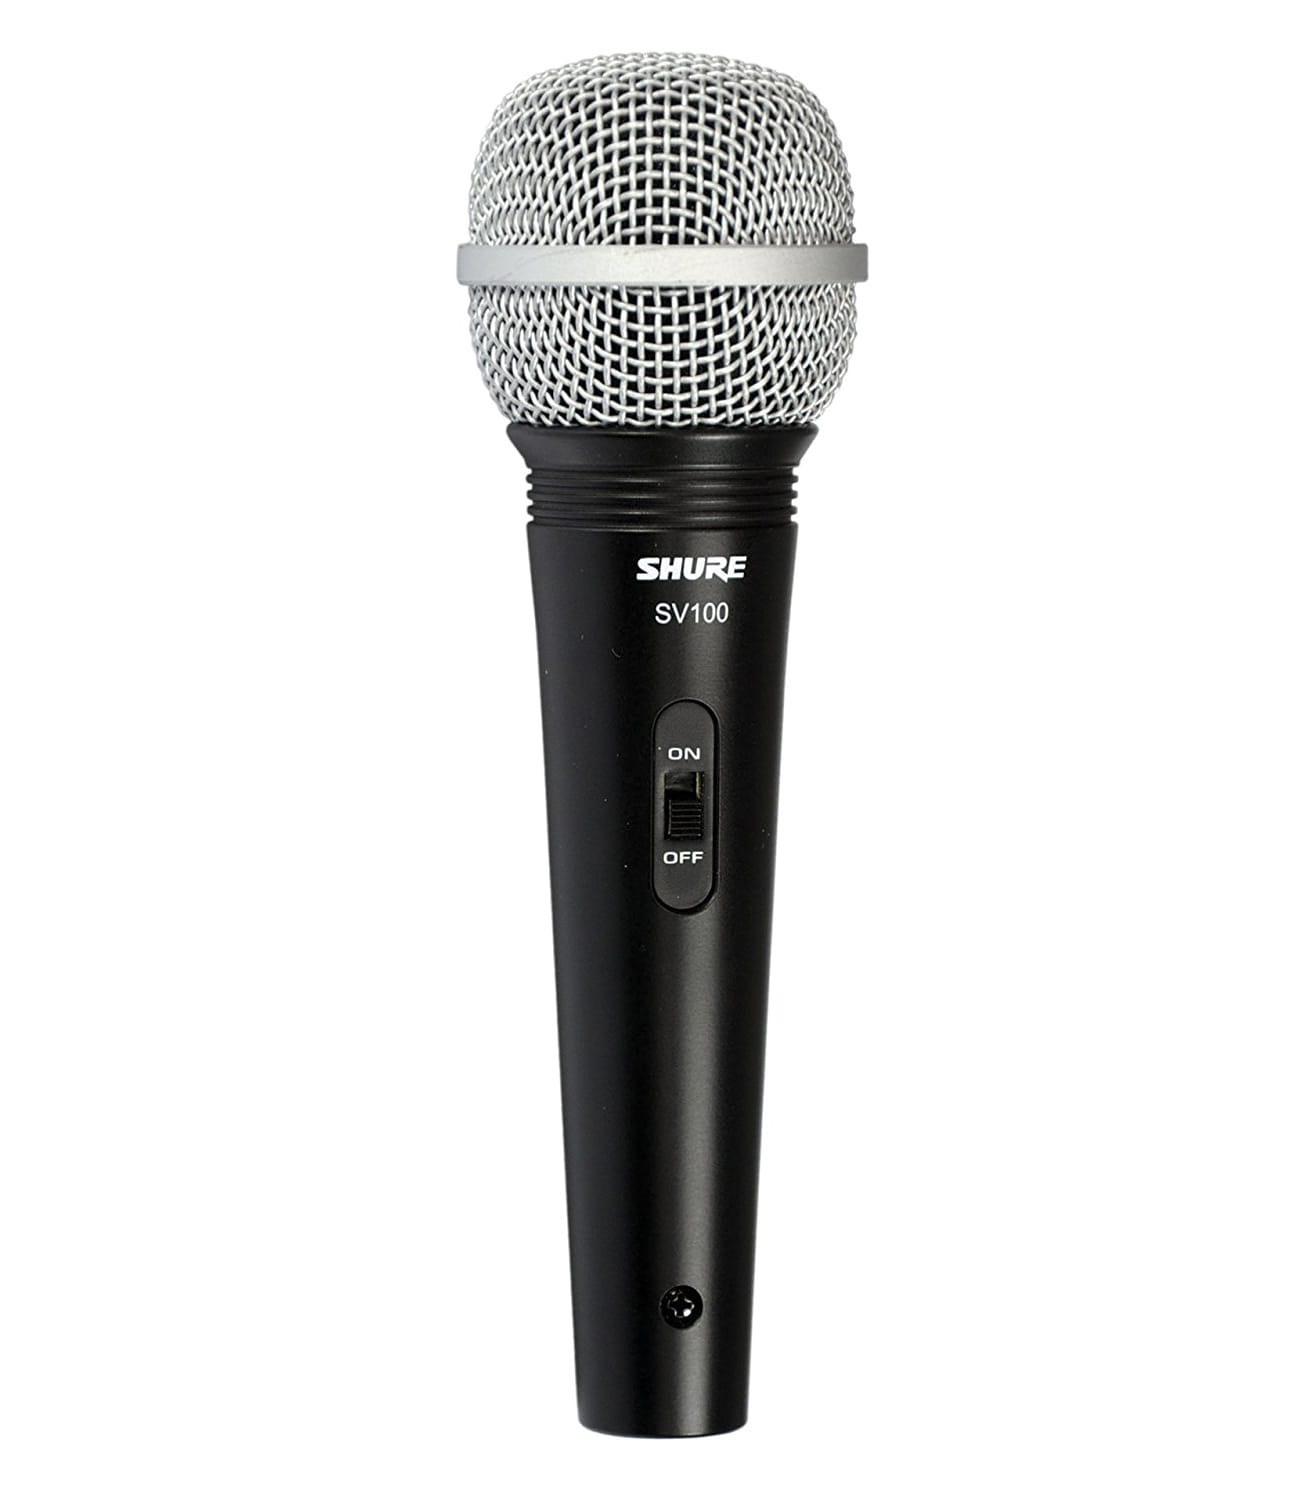 SV100 multi purpose dynamic microphone with cable